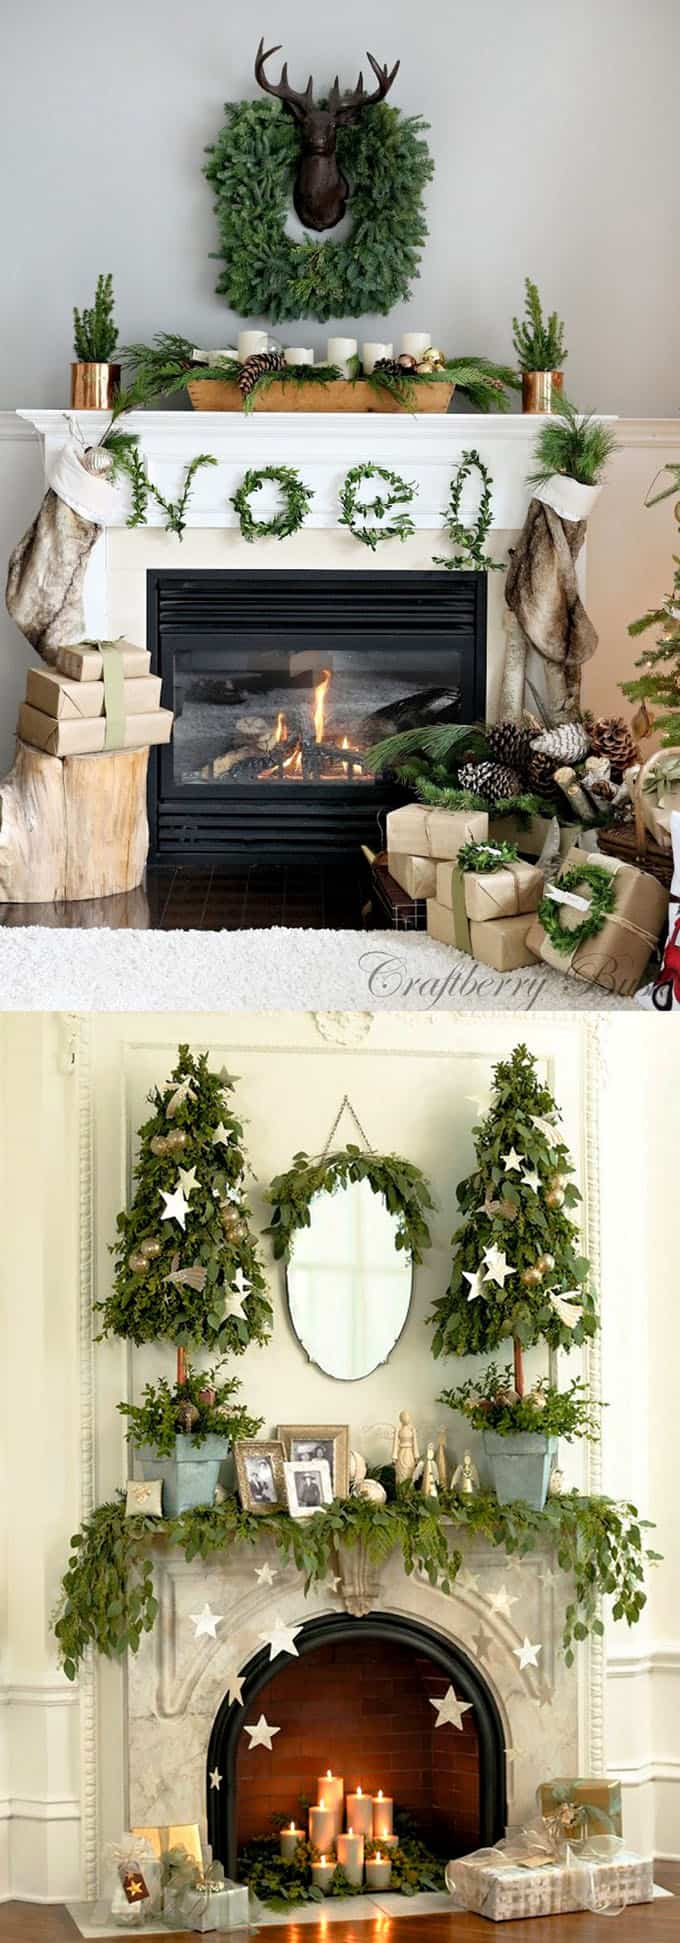 100 Favorite Christmas Decorating Ideas For Every Room In Your Home Part 1 Page 2 Of 2 A